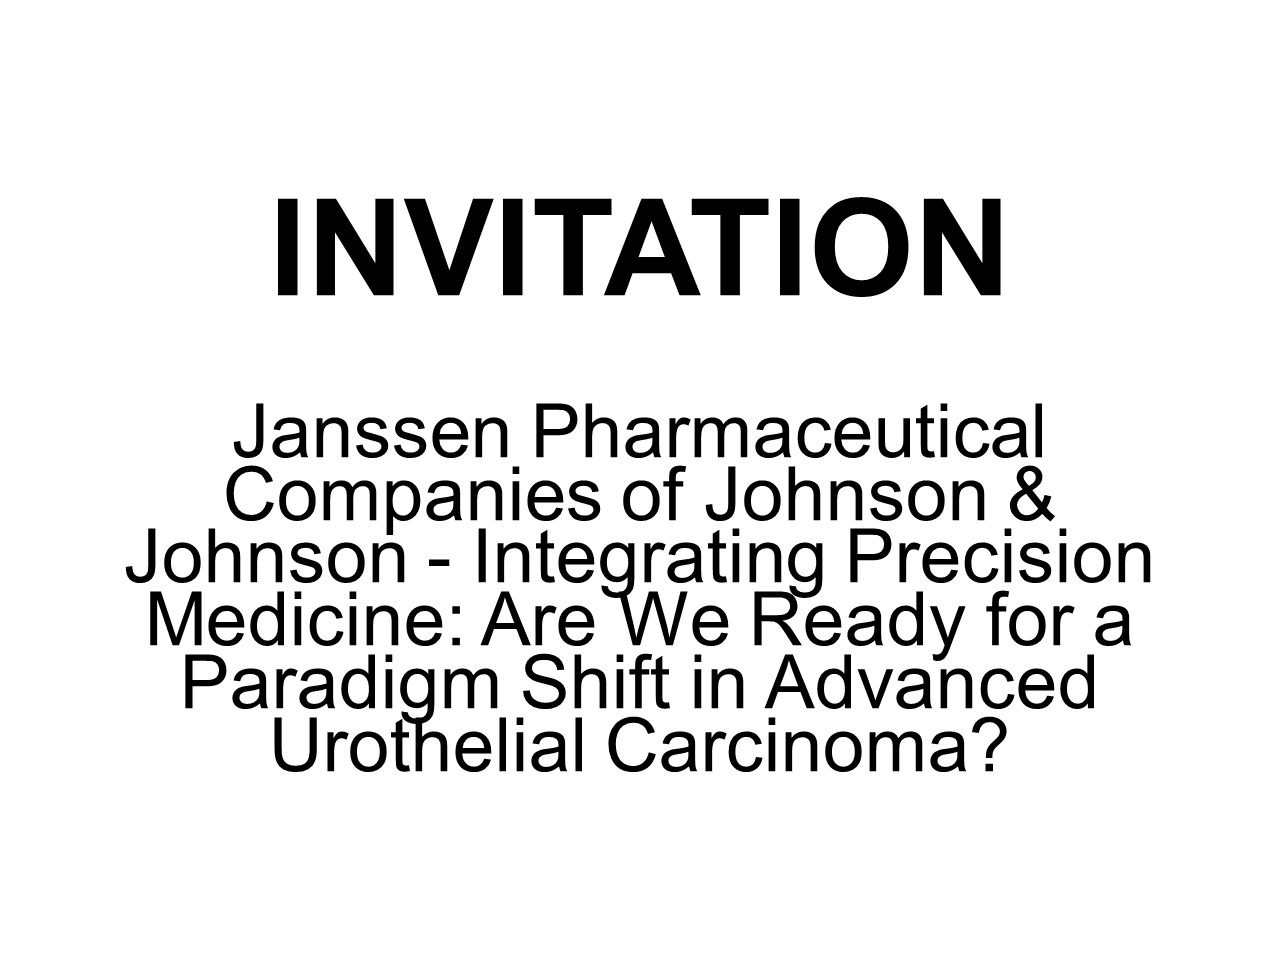 Janssen Integrating Precision Medicine